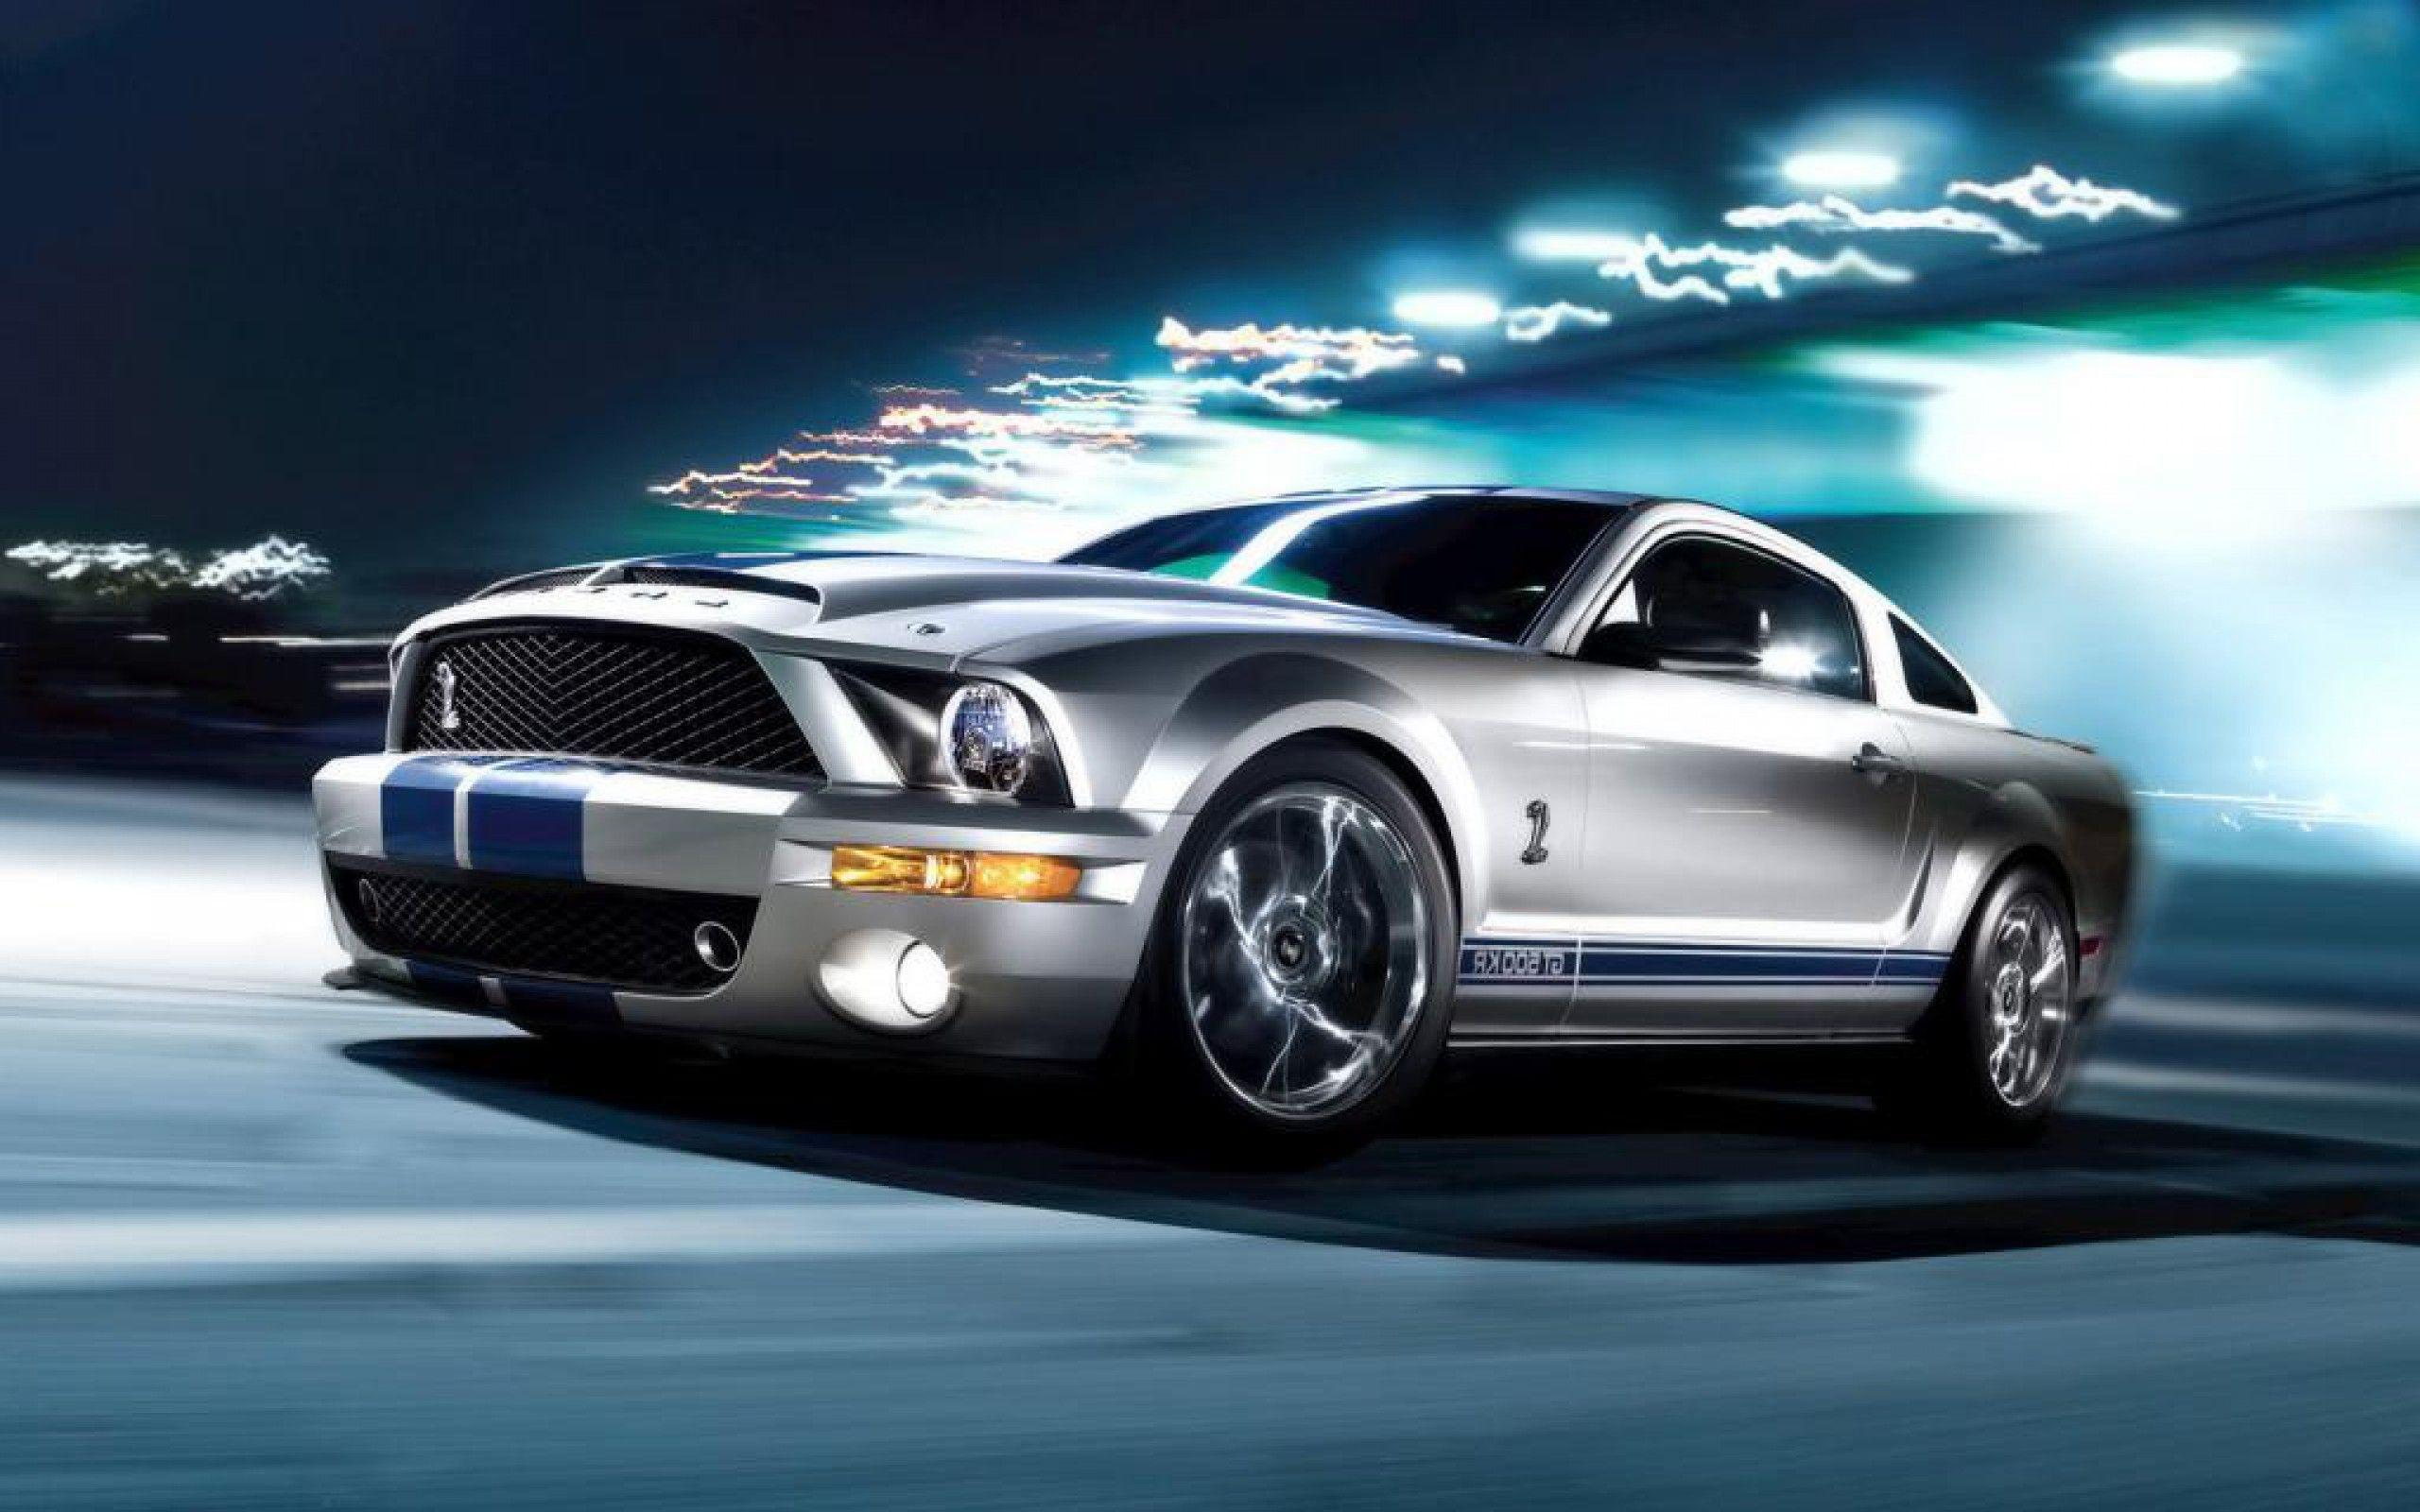 shelby mustang wallpaper - photo #14